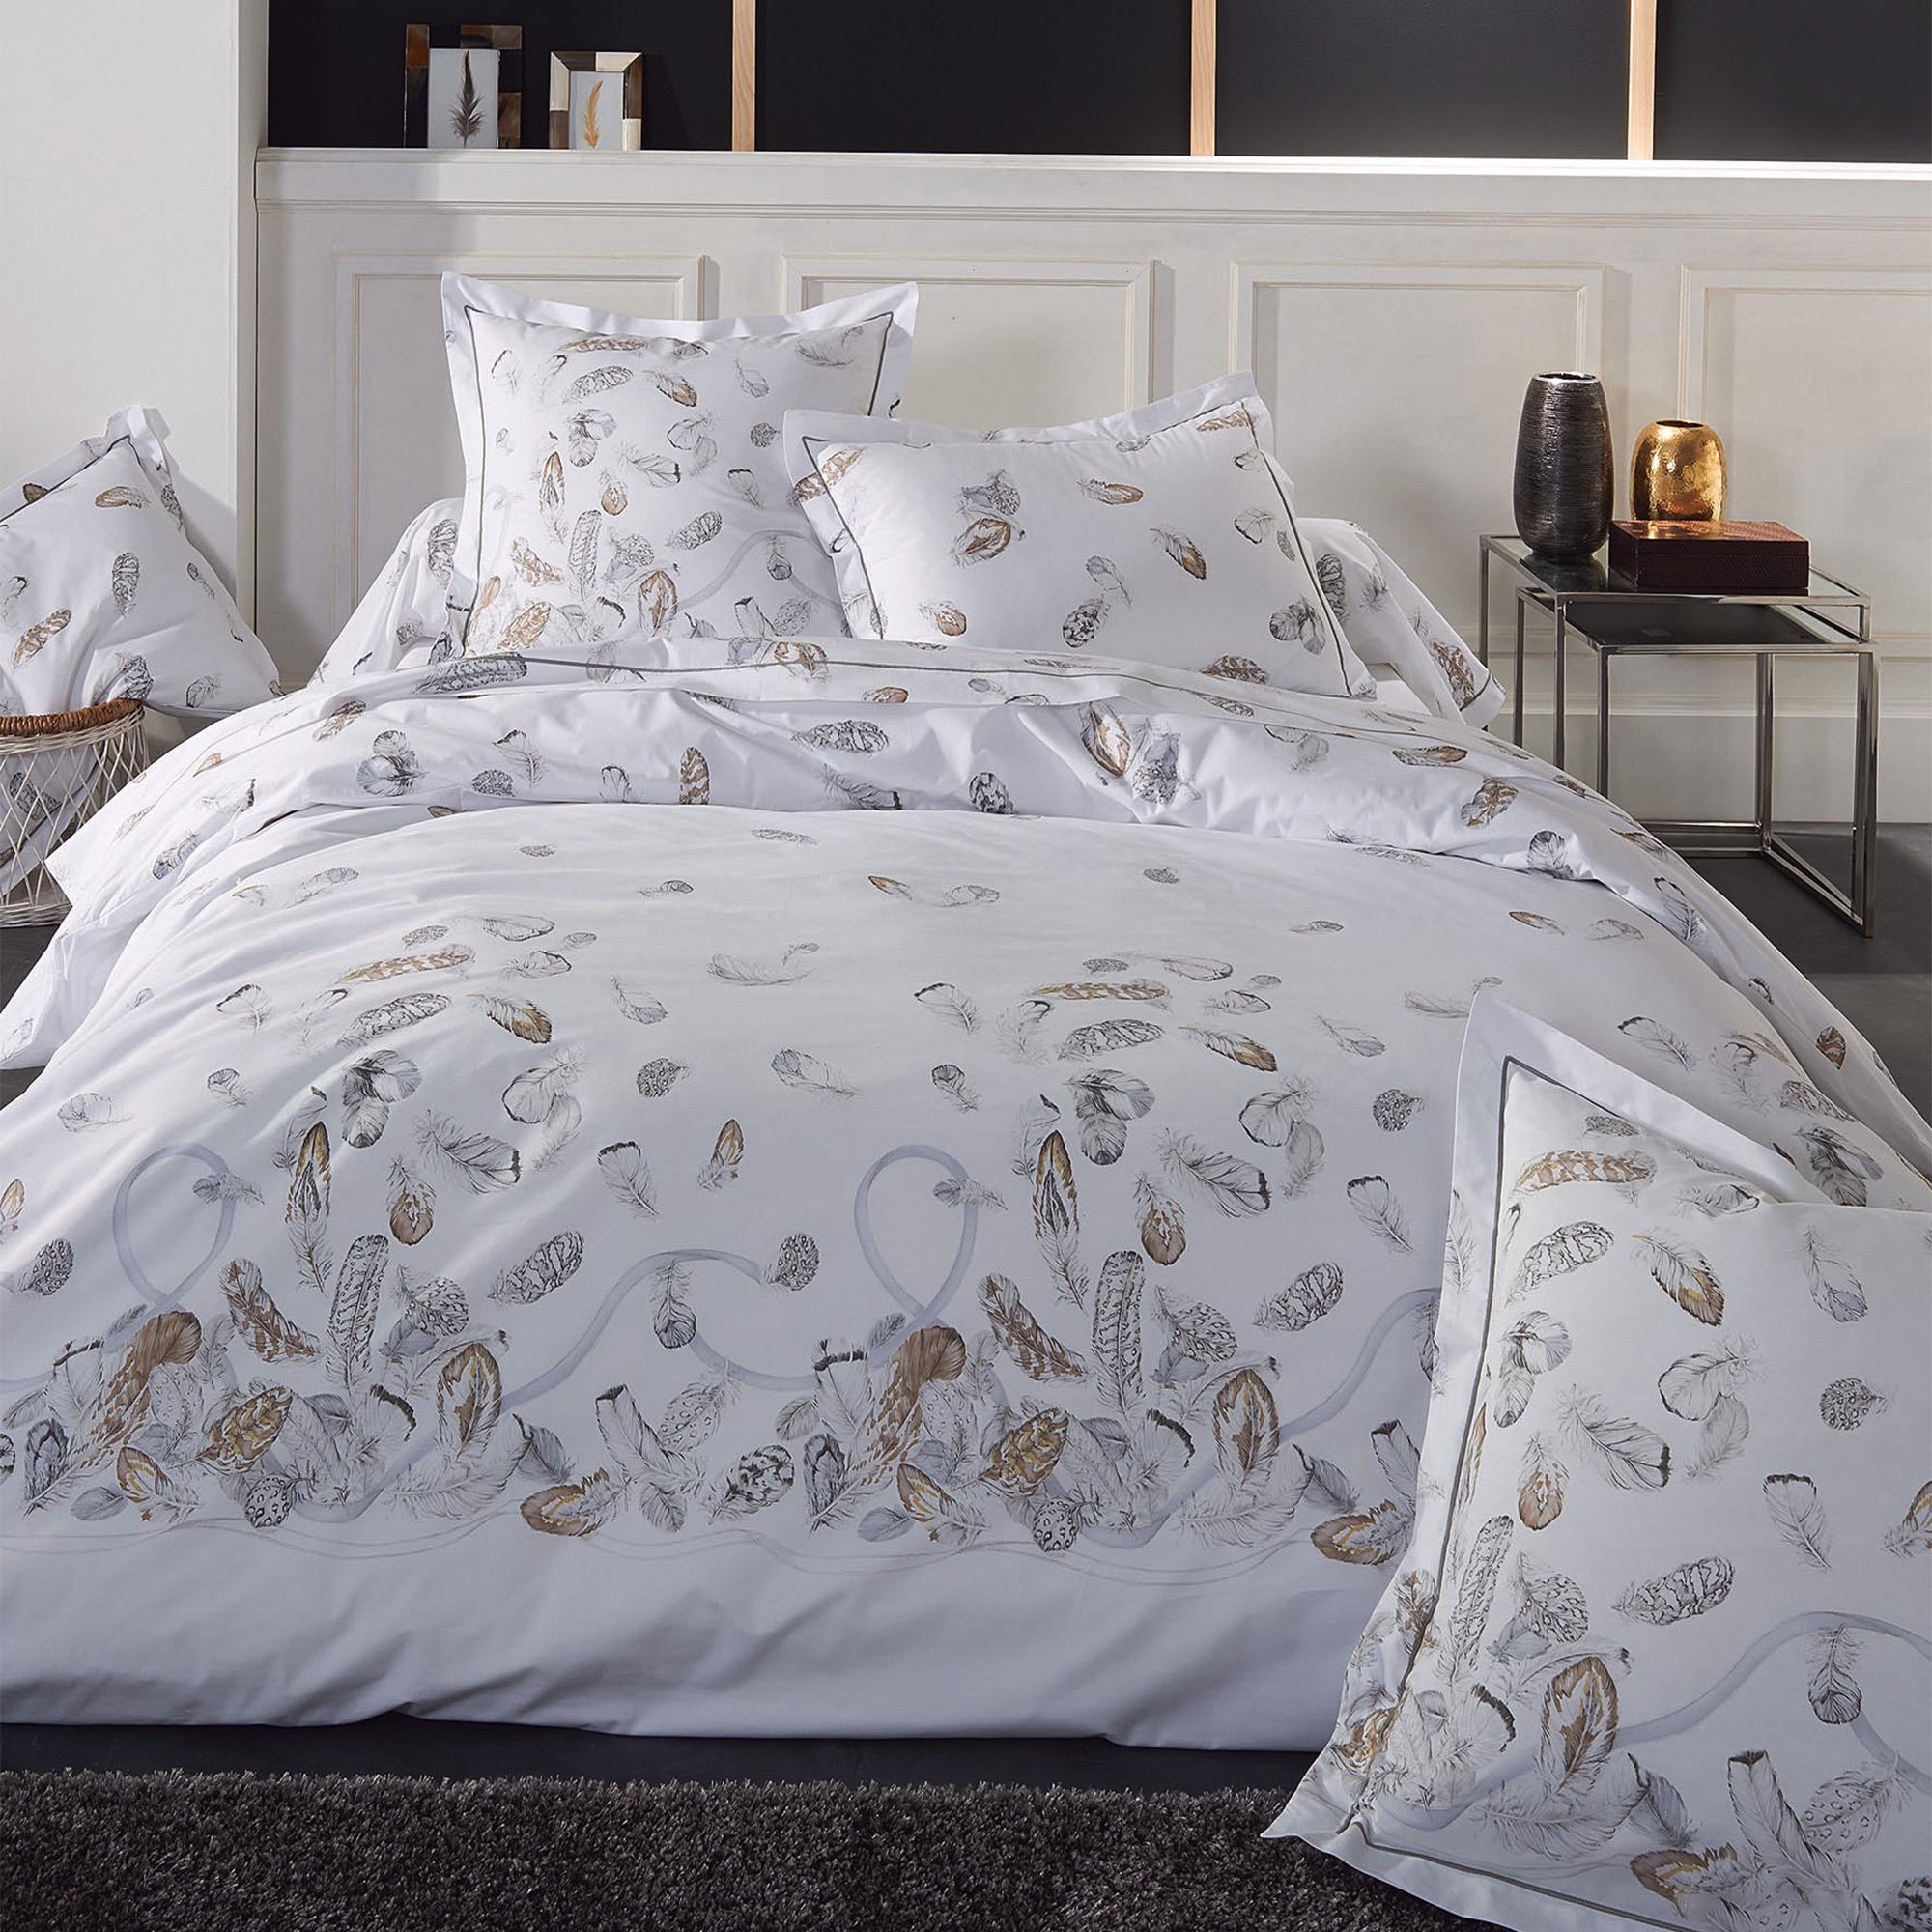 parure de lit percale pur coton peign 260x240 cm plumes linnea vente de linge de maison. Black Bedroom Furniture Sets. Home Design Ideas